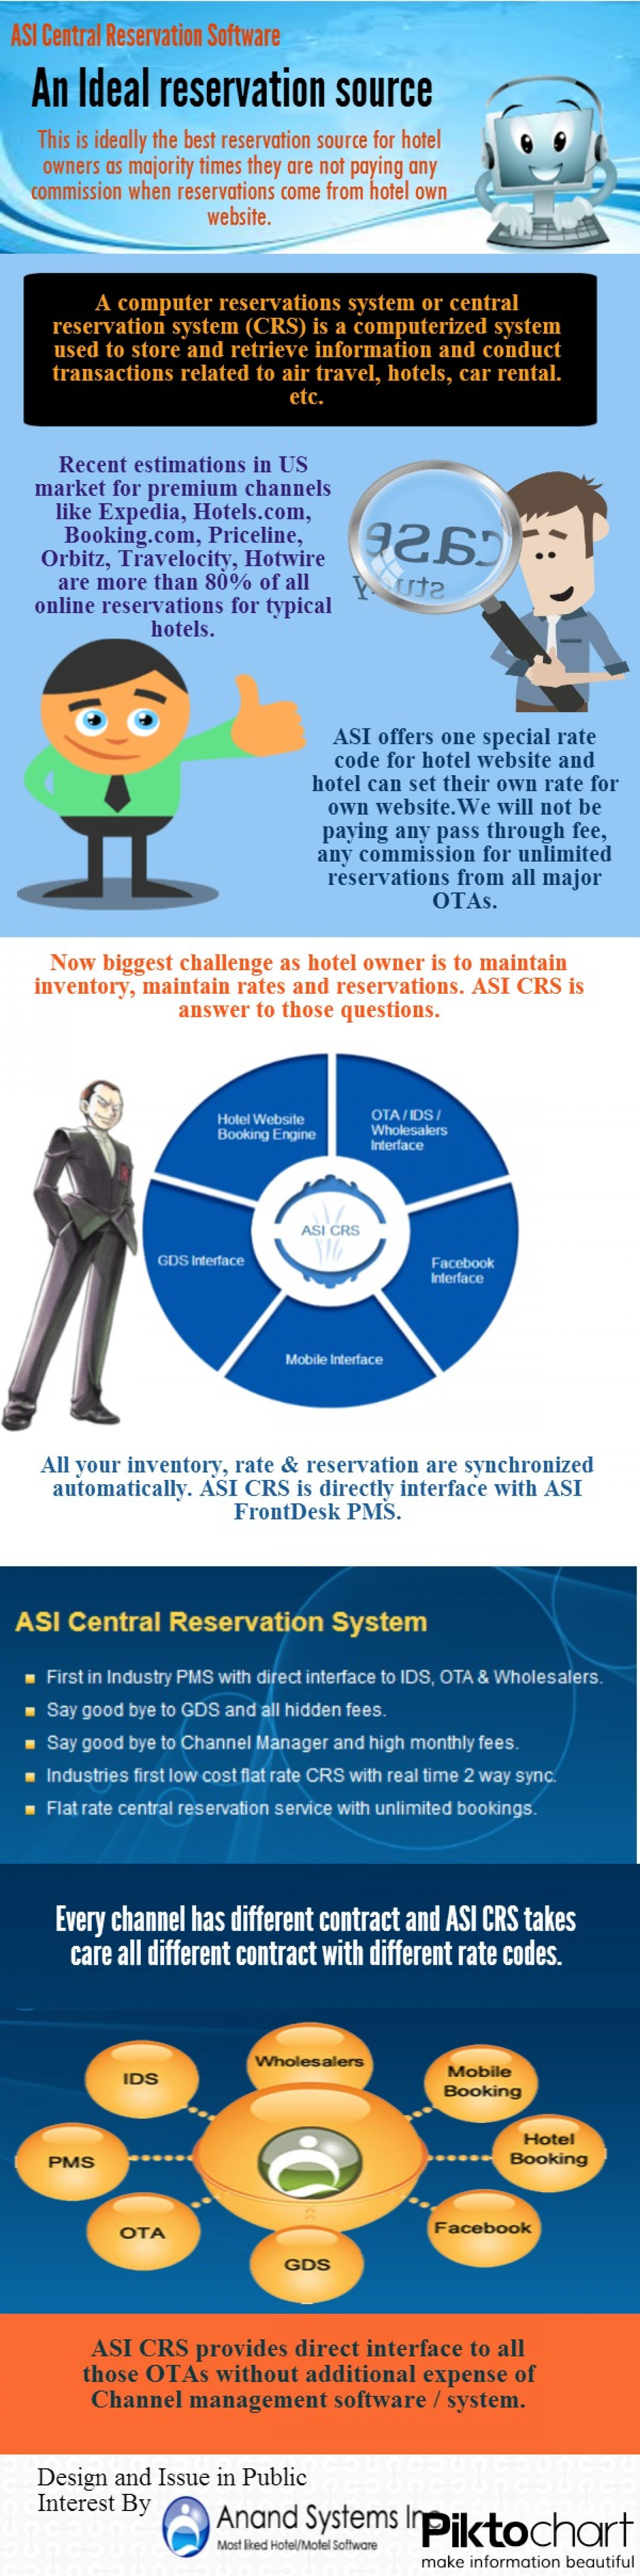 ASI Central Reservation Software An Ideal reservation source Infographic